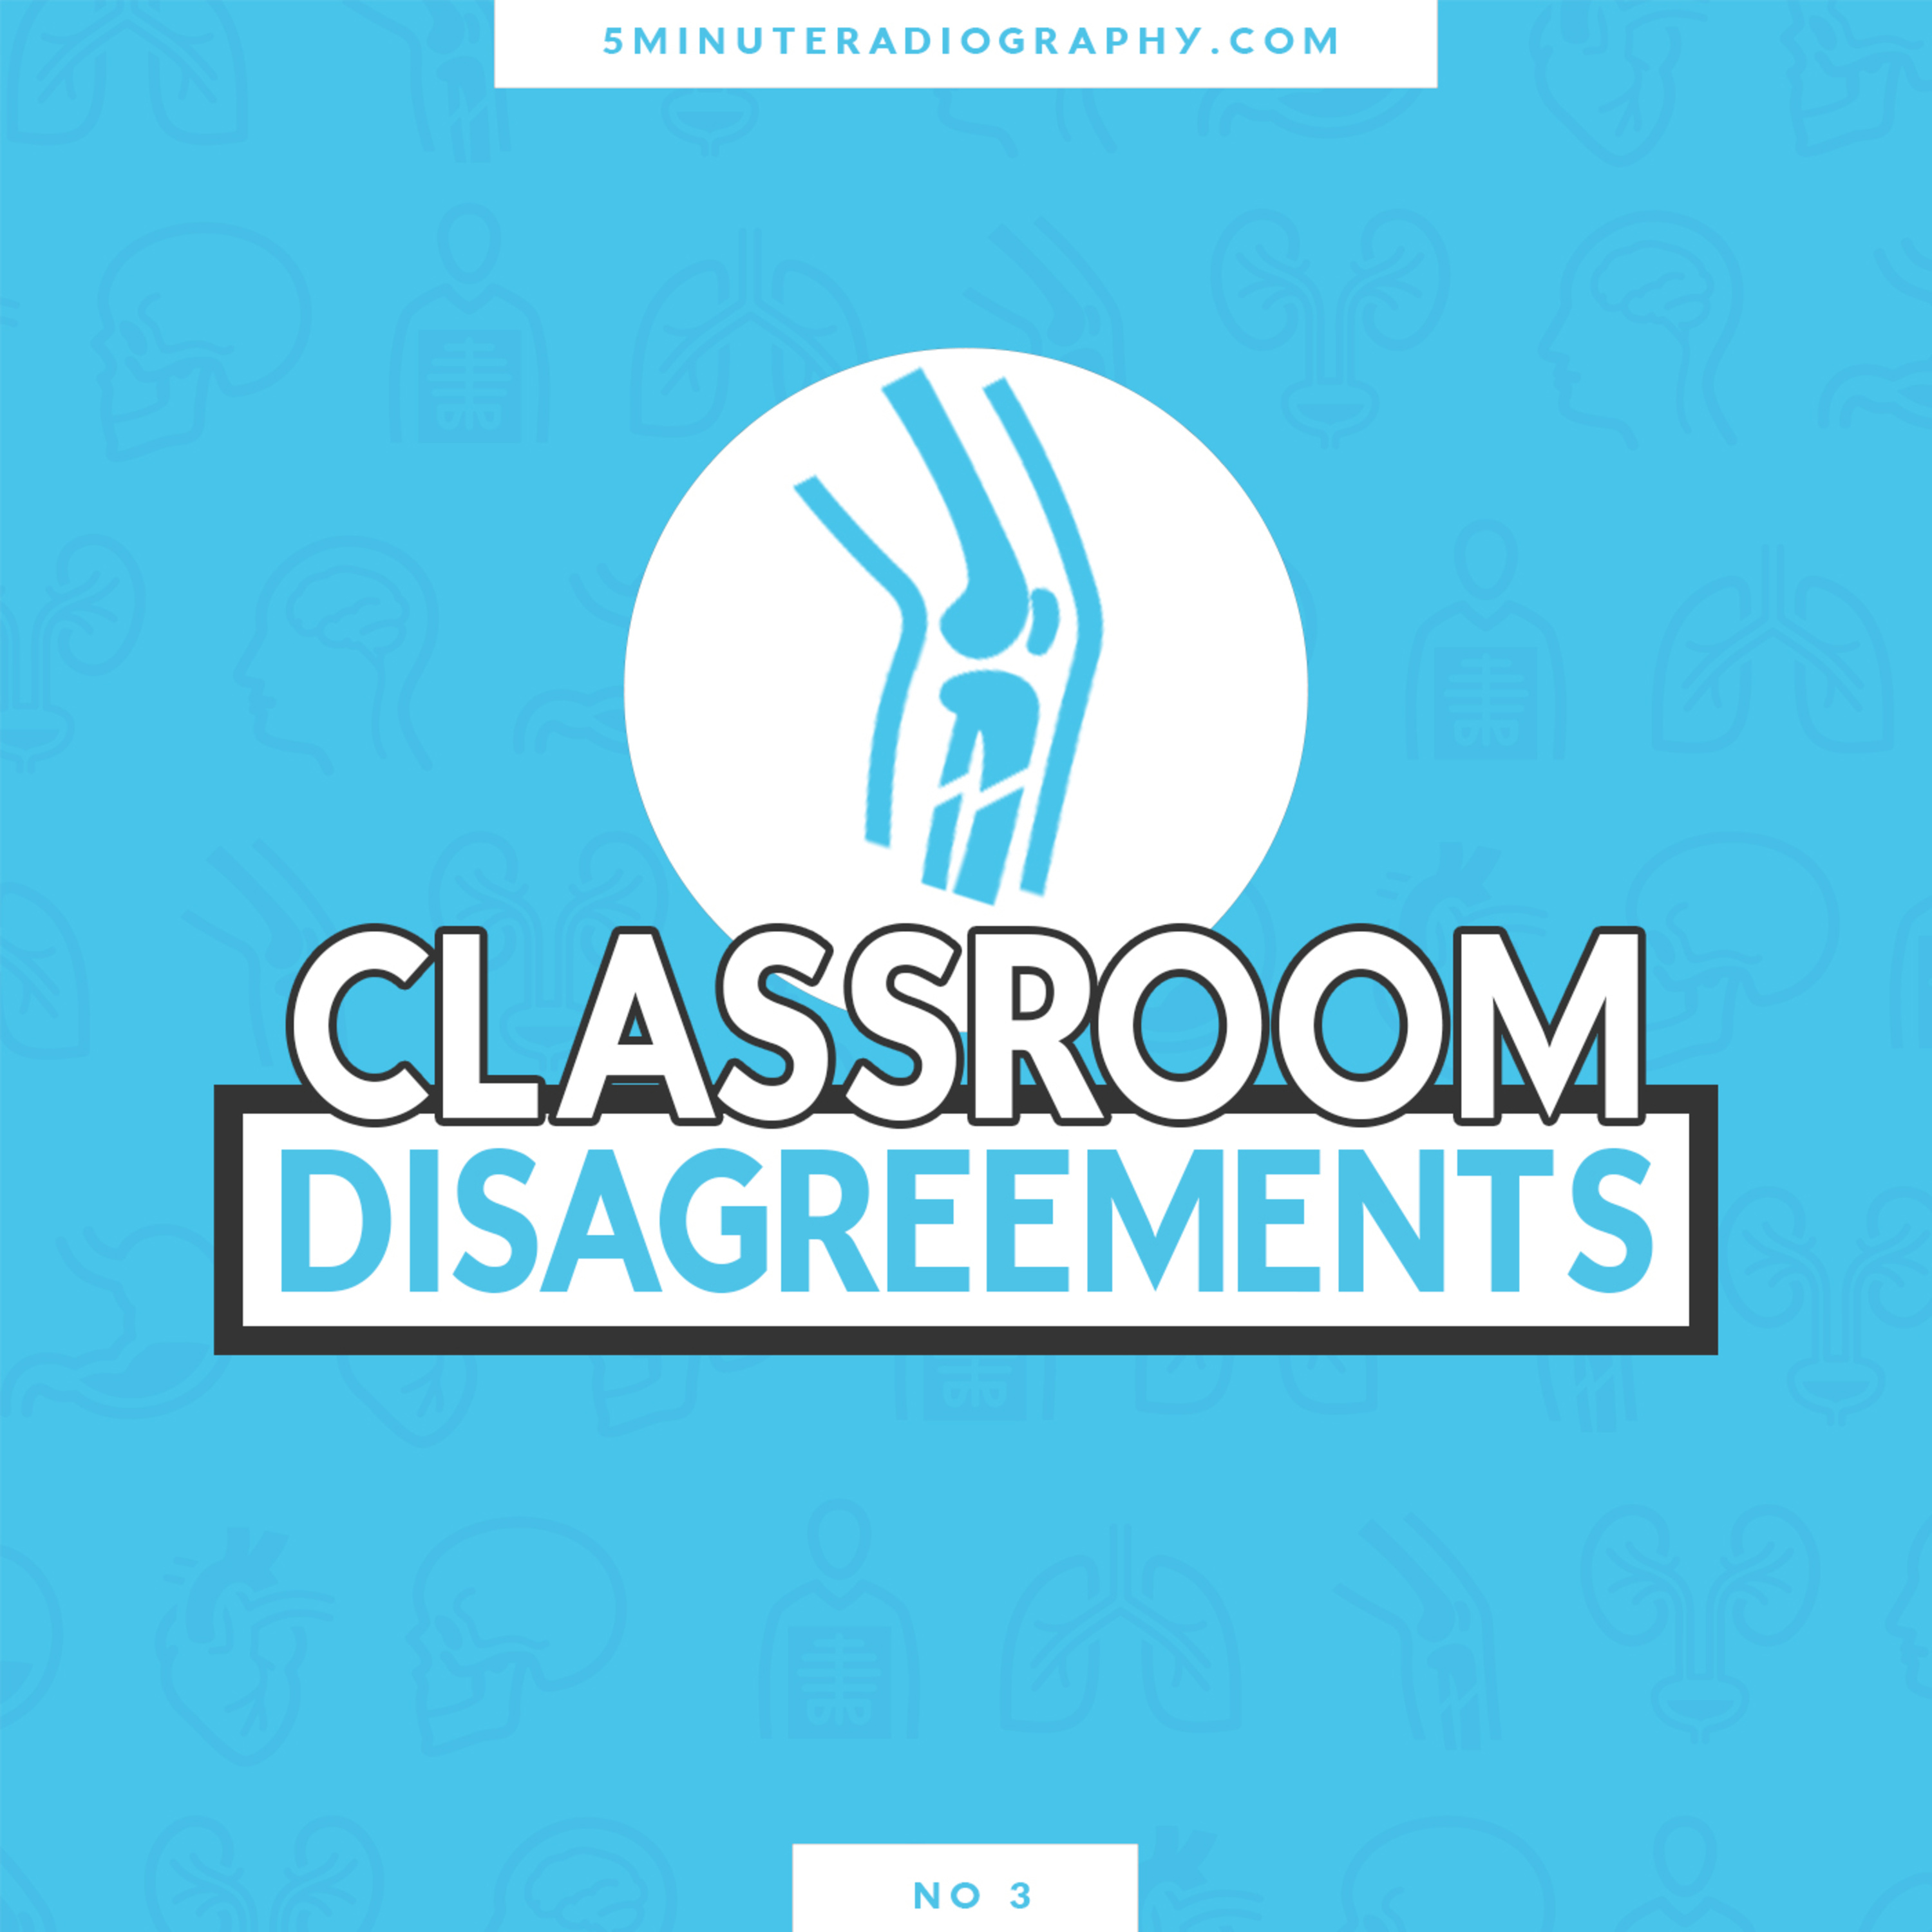 When Student and Instructor Disagree